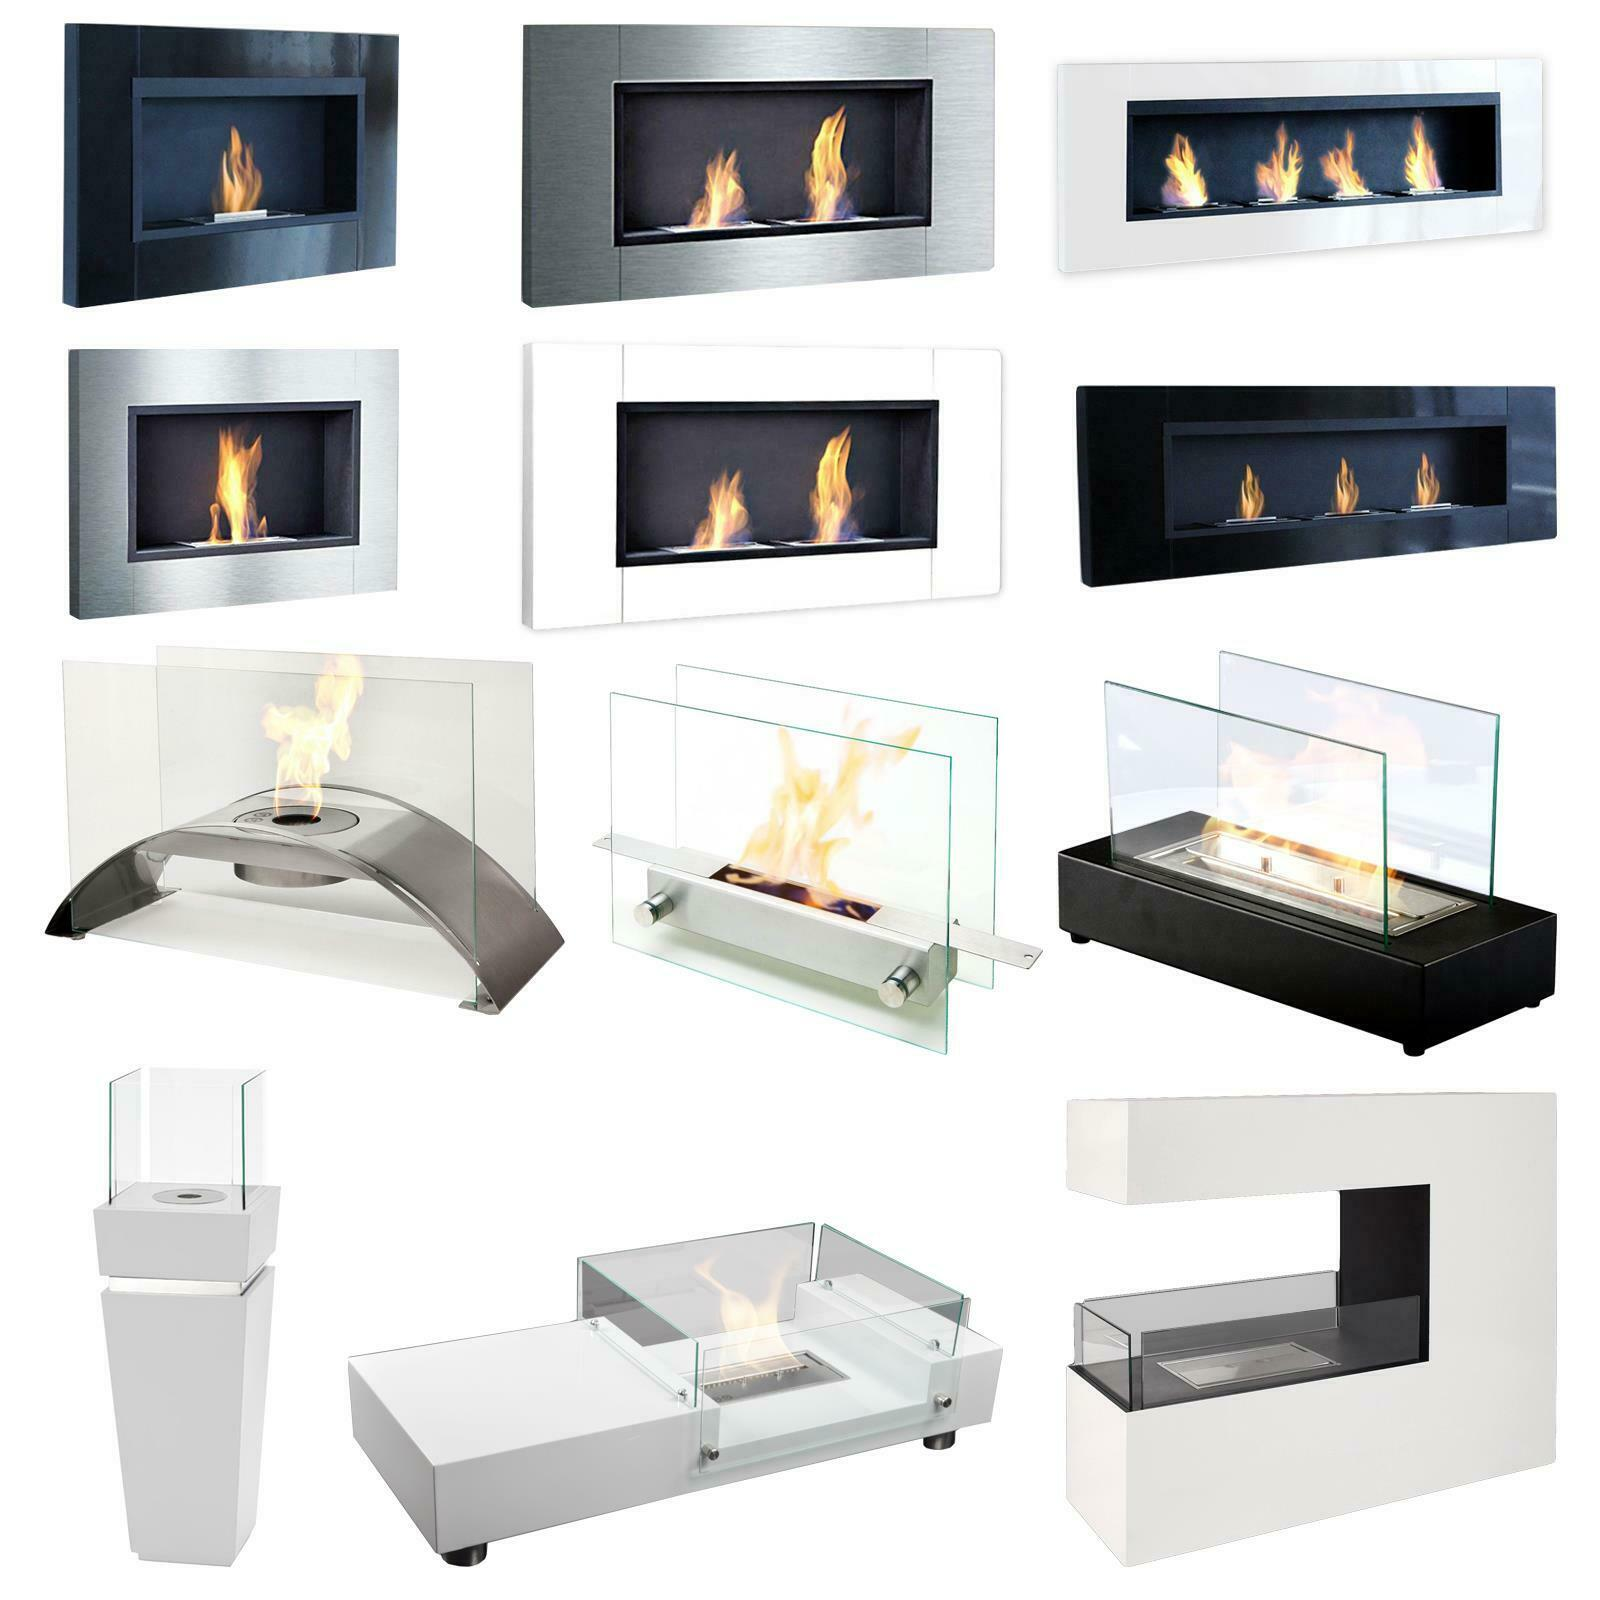 kamin wandkamin tischkamin ethanol kamin gelkamin brennkammer bioethanol eur 24 99 picclick de. Black Bedroom Furniture Sets. Home Design Ideas